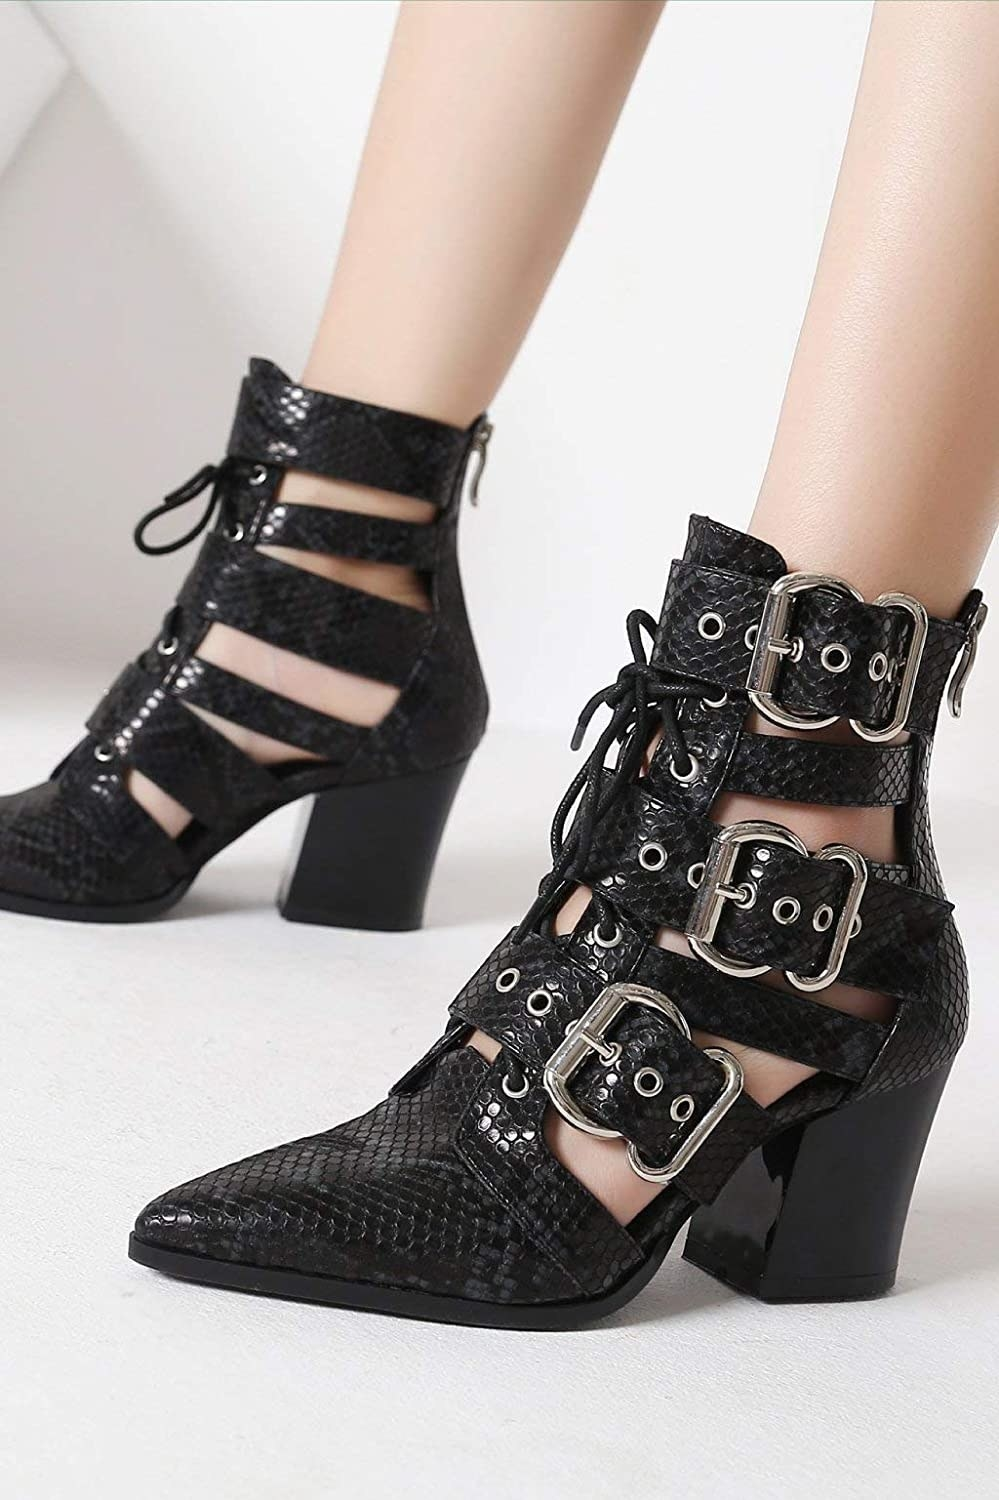 Mackin J lace-up ankle booties in a black, textured material